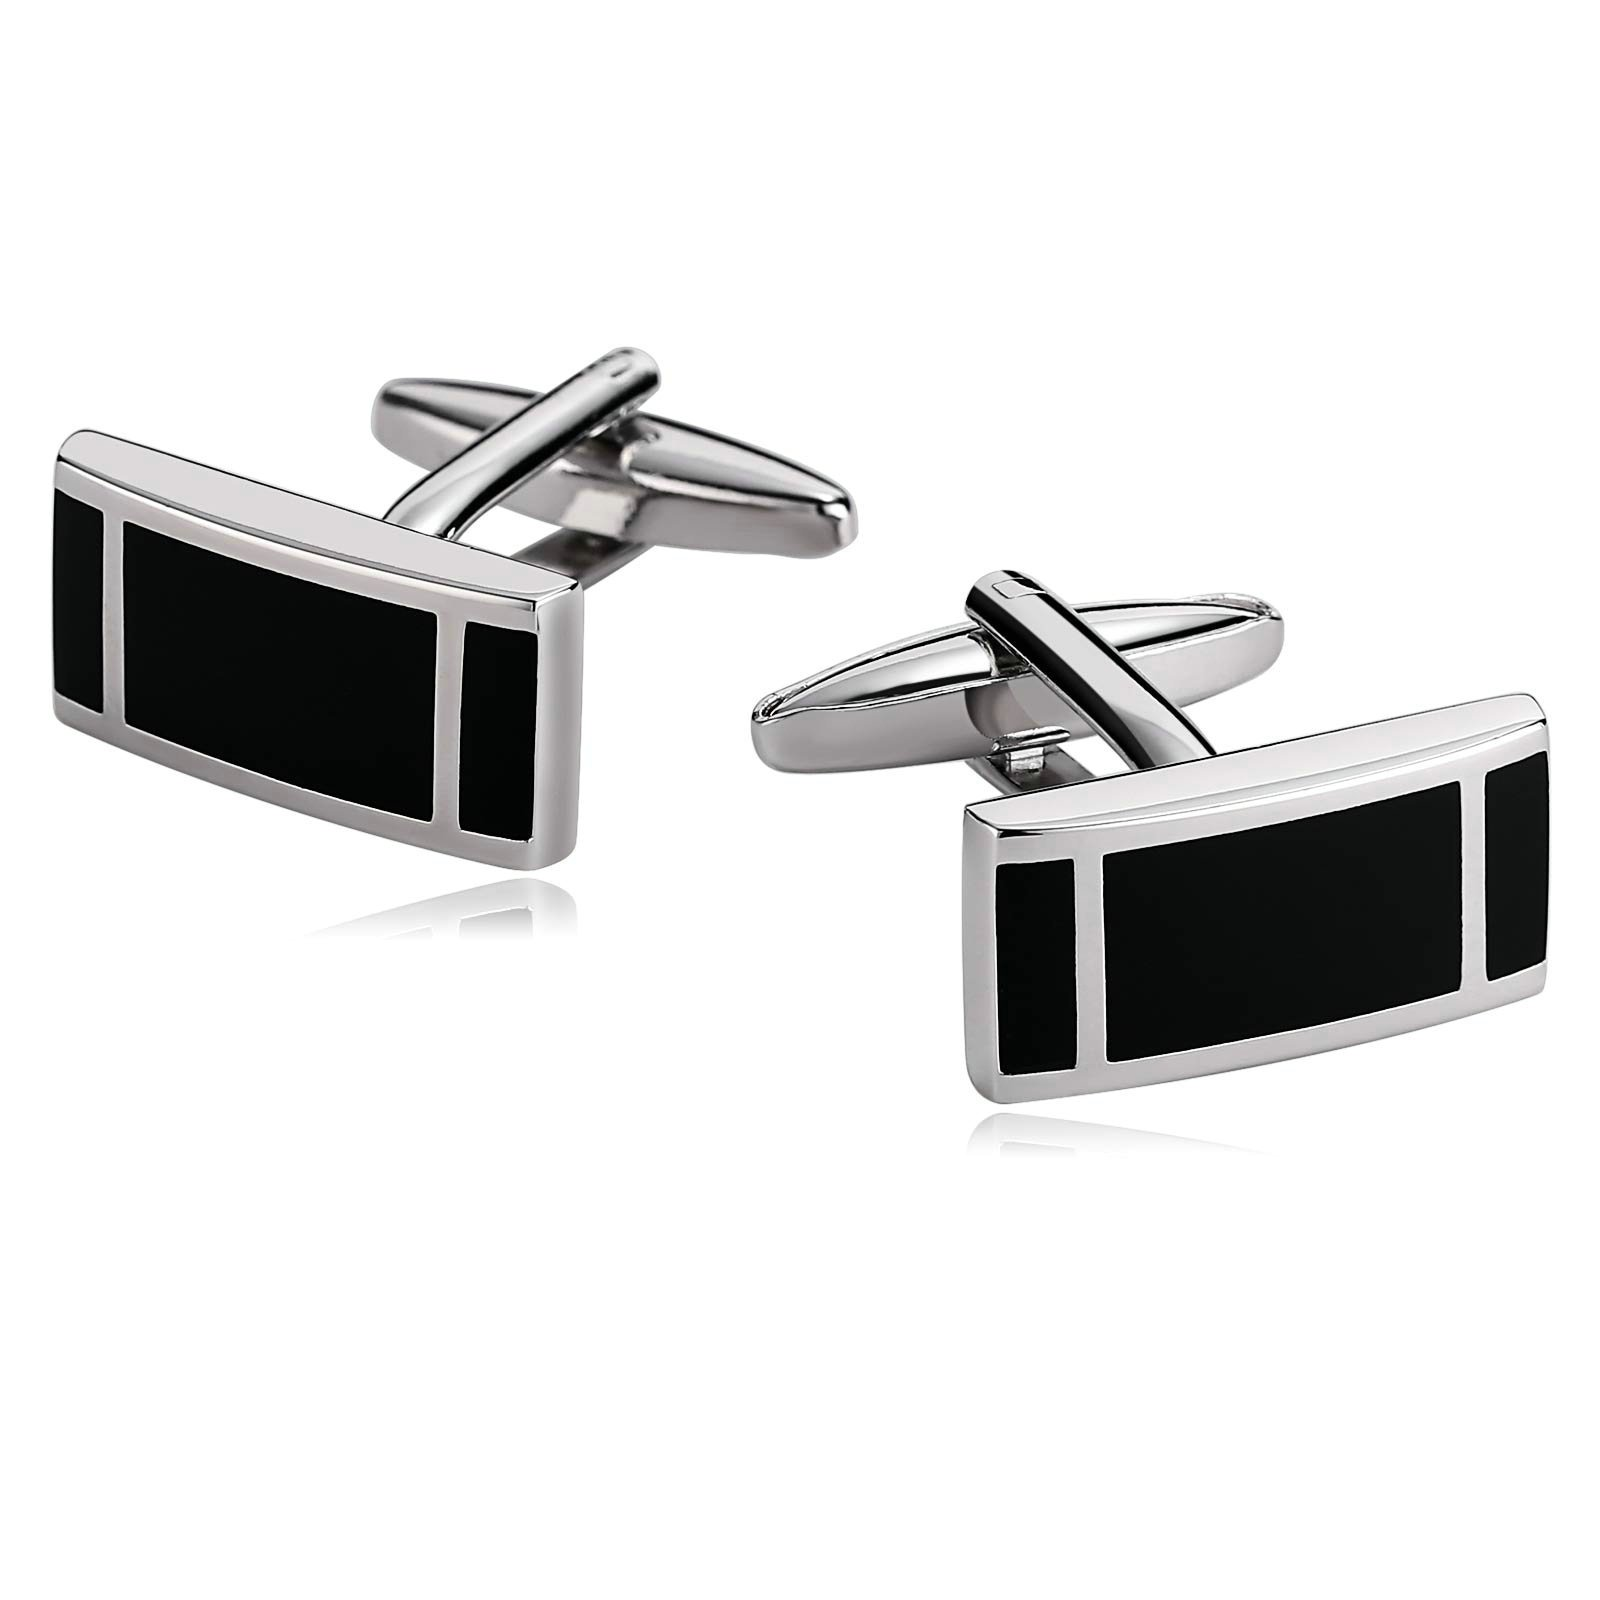 Stacy Adams Mens Silver Rectangle Cuff Link With Mop Horizontal Lines